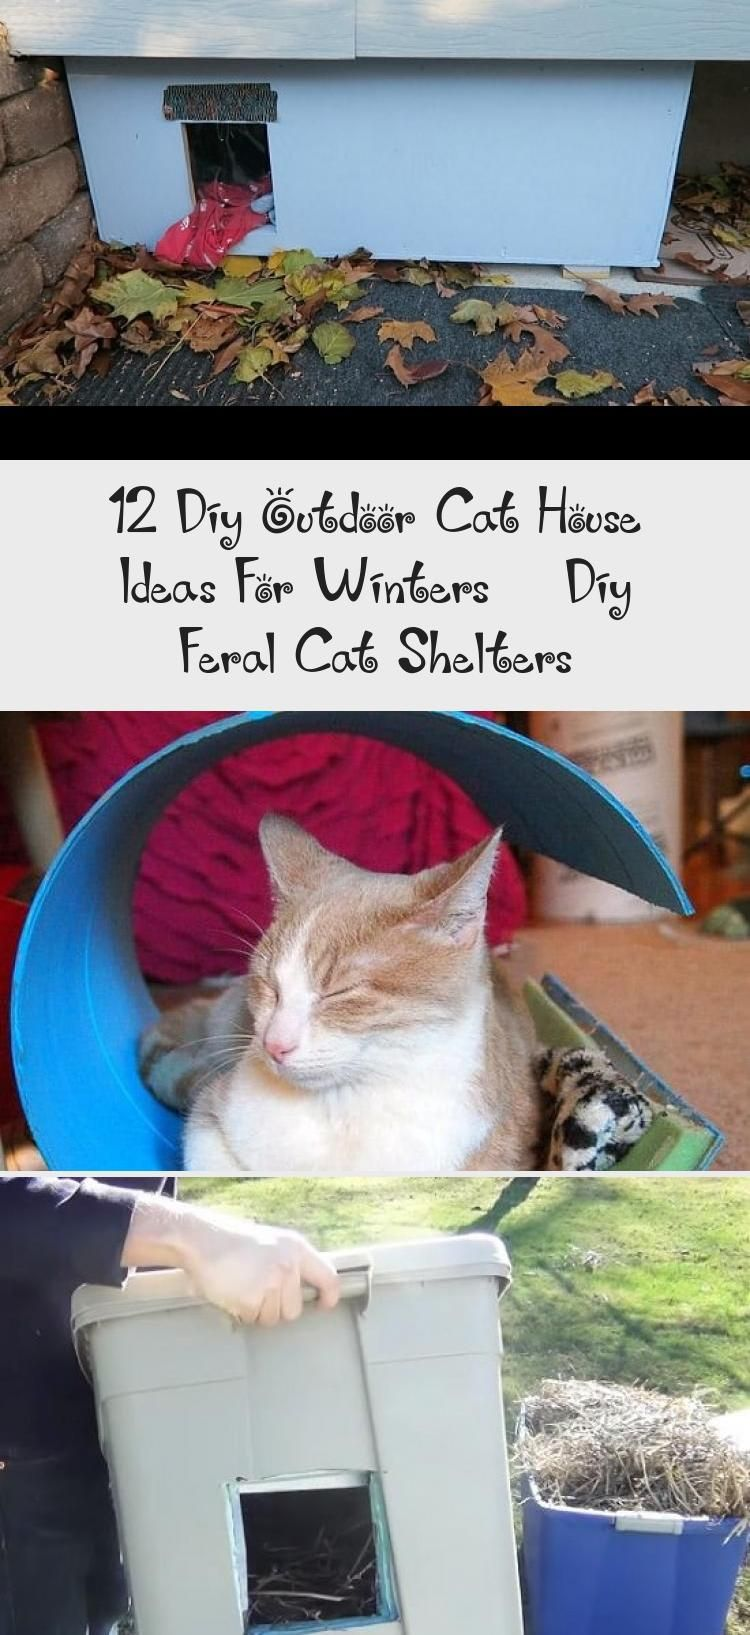 12 Diy Outdoor Cat House Ideas For Winters Diy Feral Cat